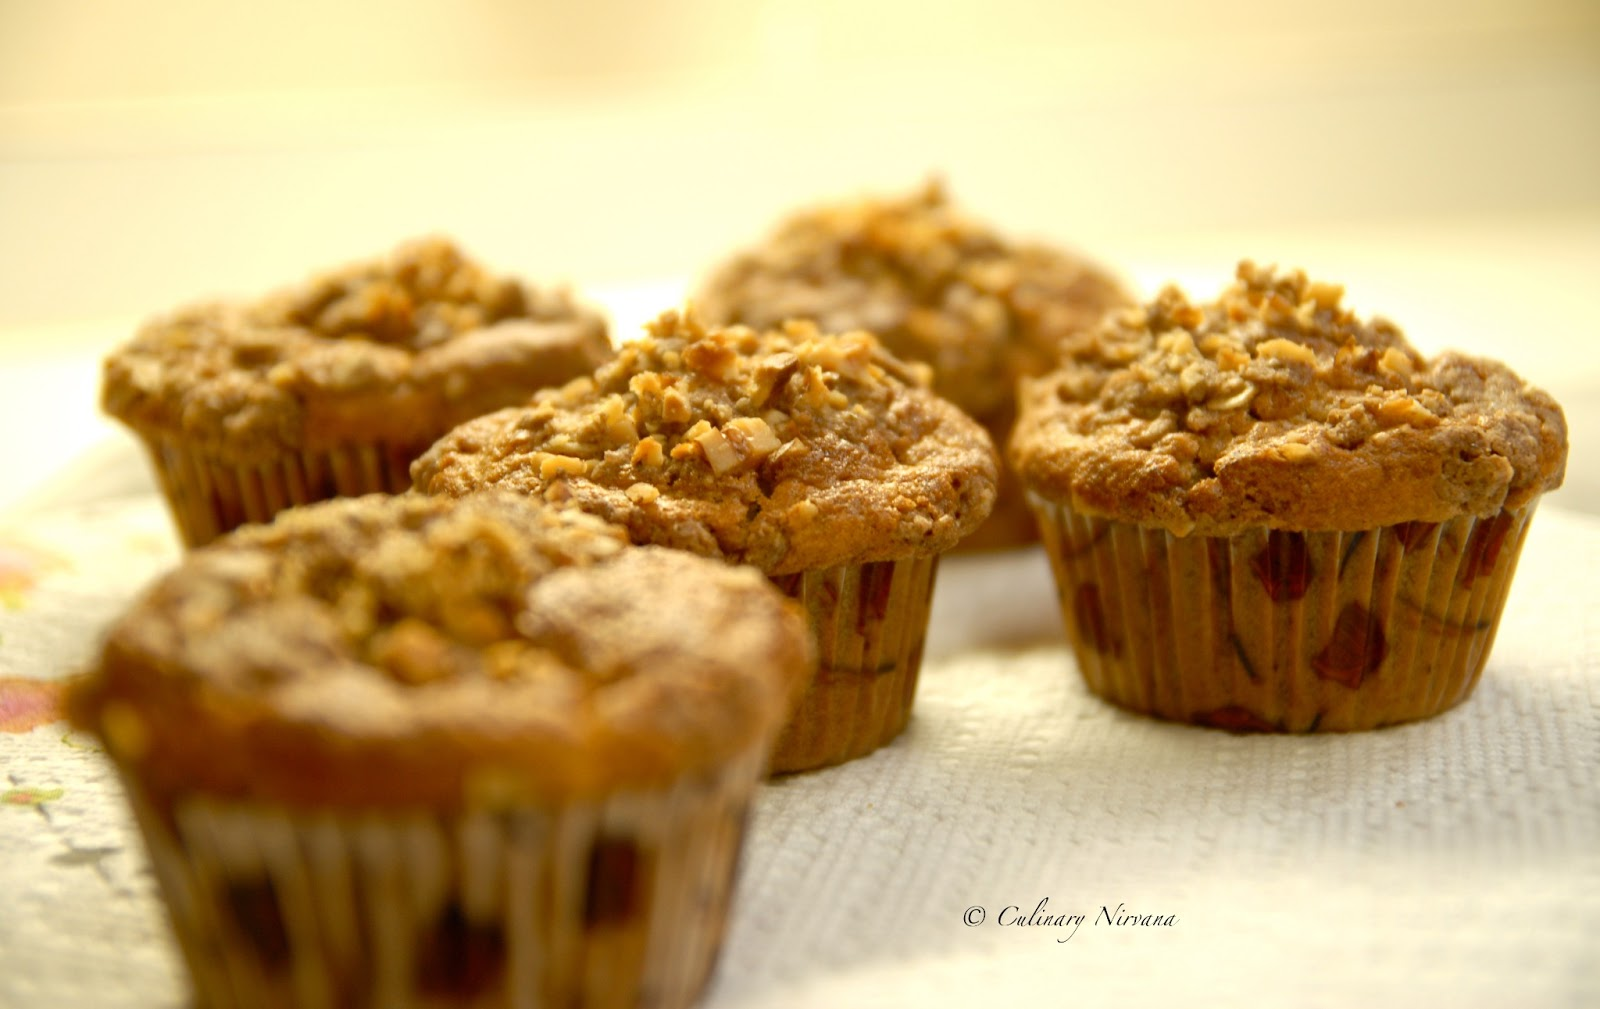 Spiced Apple Cider Muffins With Streusel Topping Recipes — Dishmaps